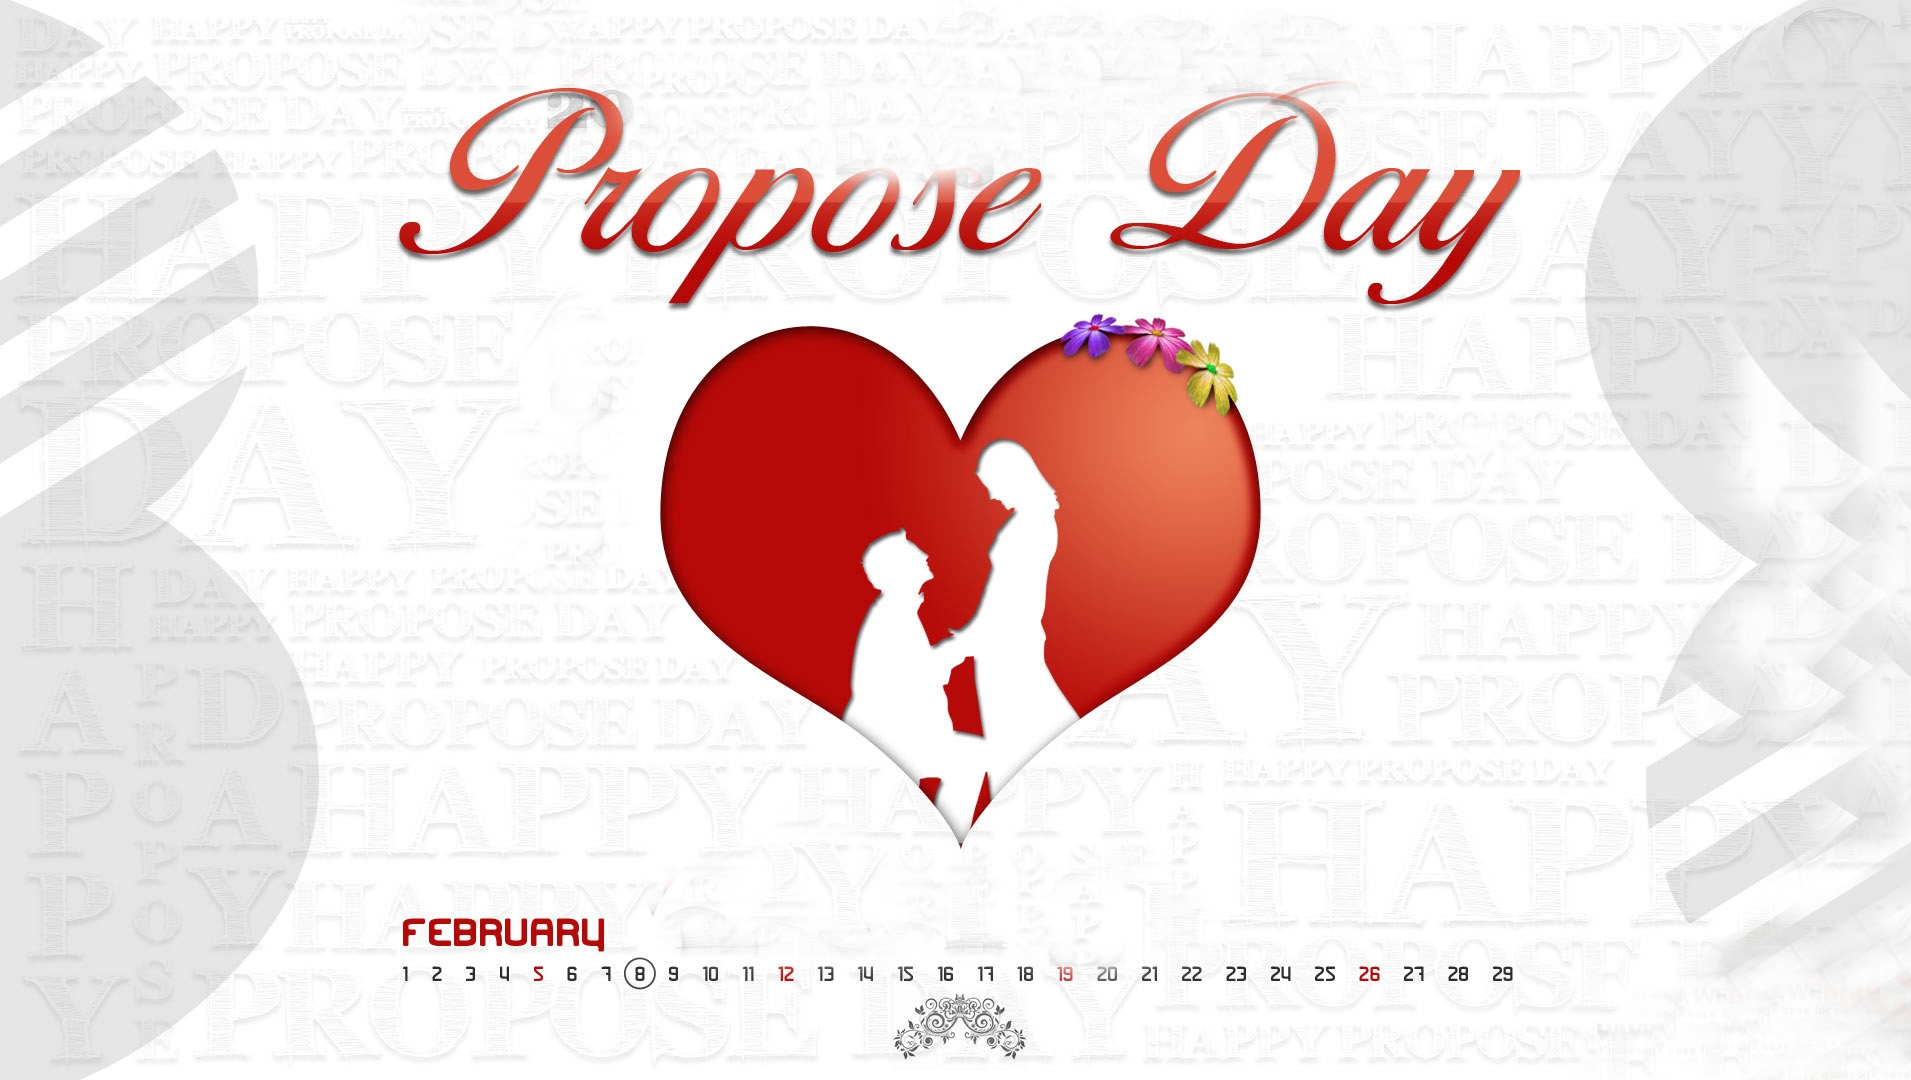 Happy Propose Day whatsapp images